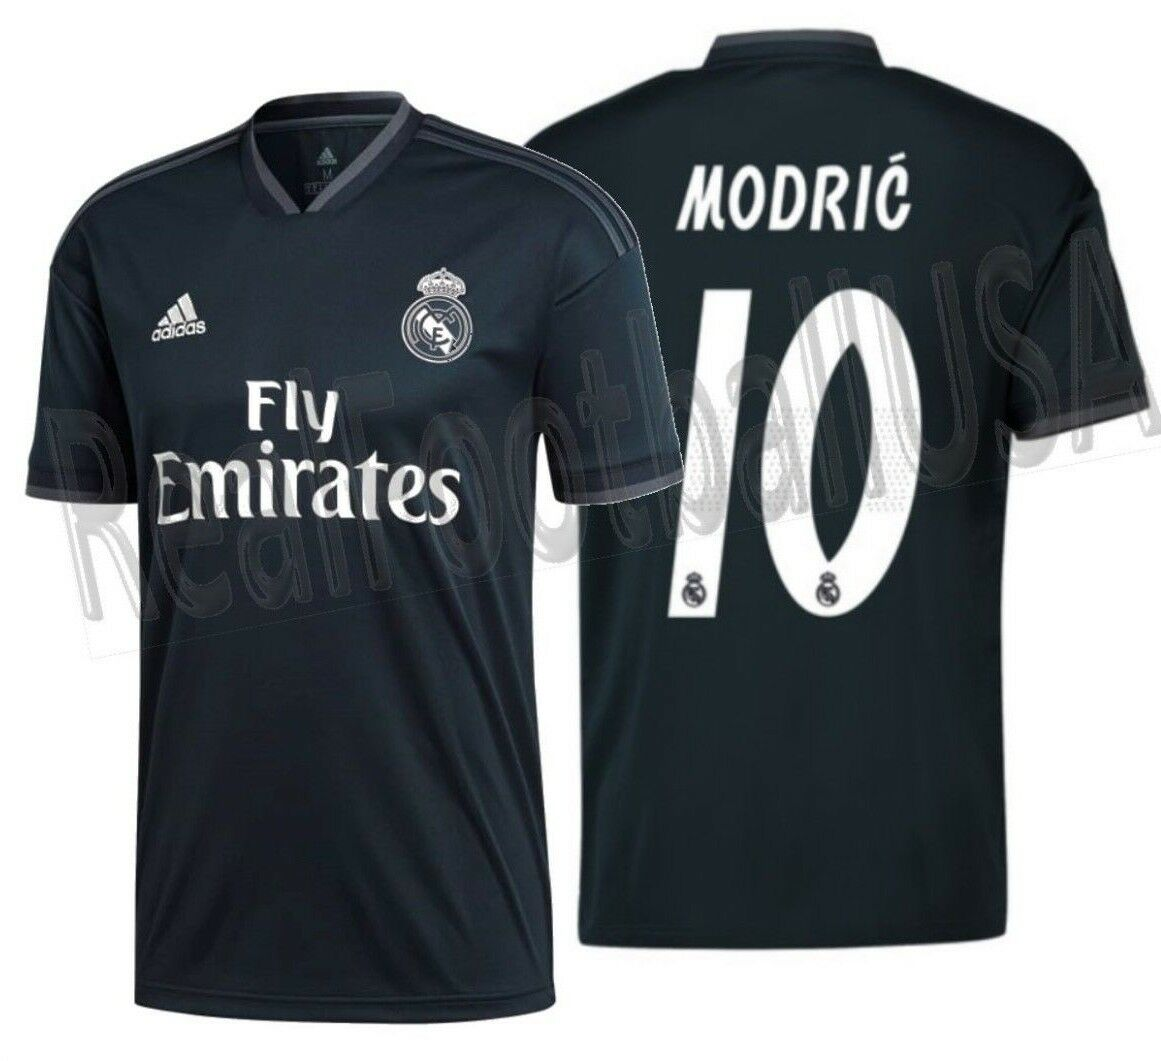 Adidas Luka Modric Real Madrid Away Jersey 2018 19